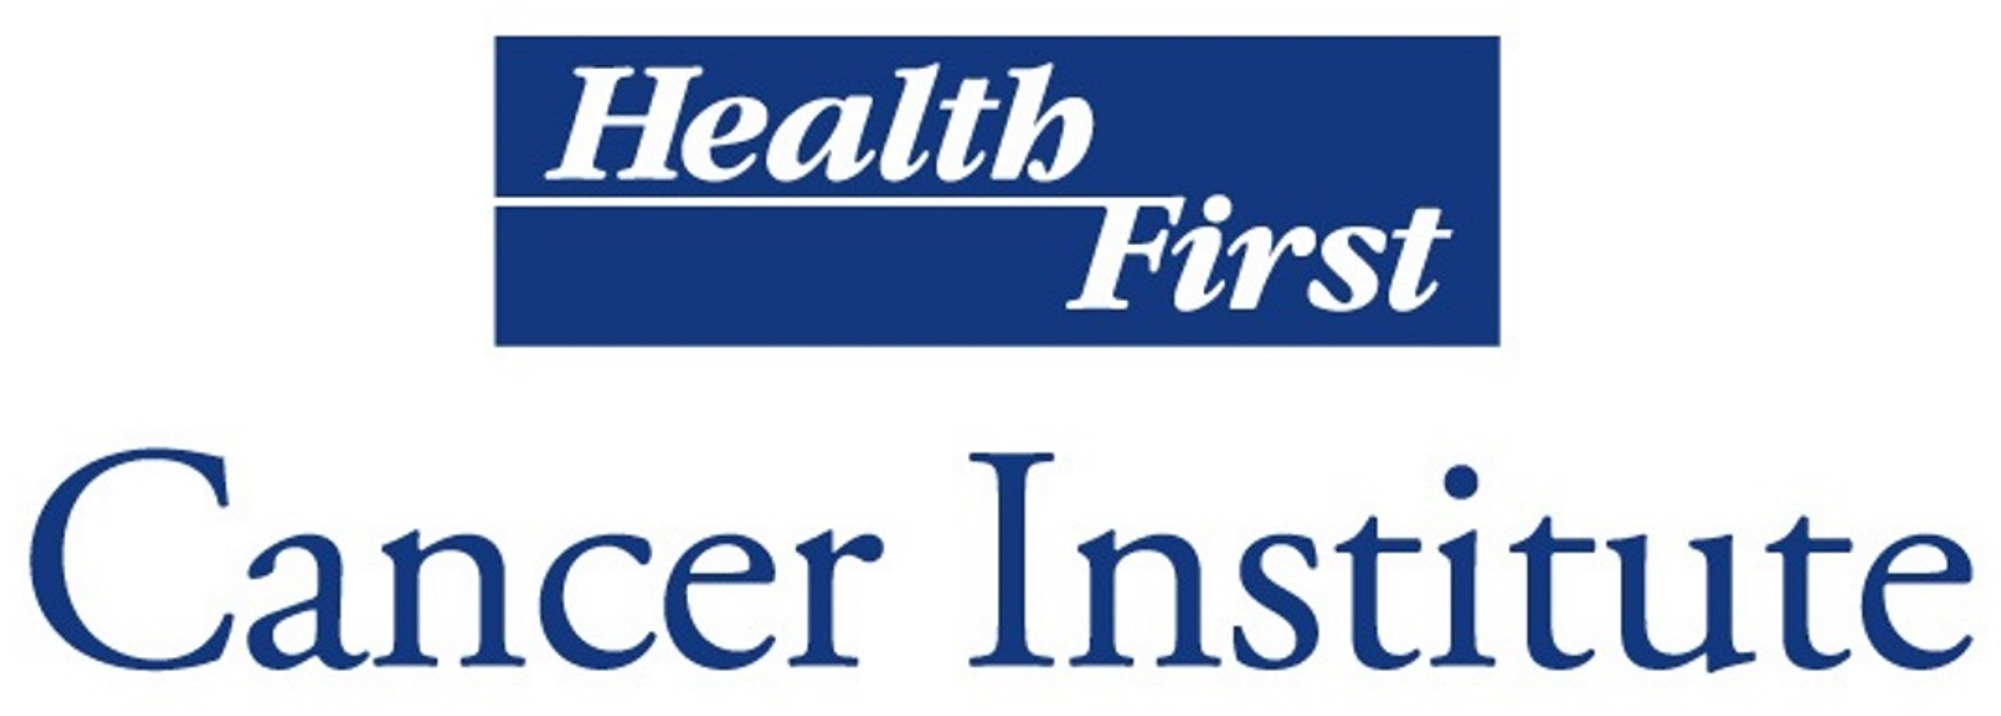 Health First Cancer Institute